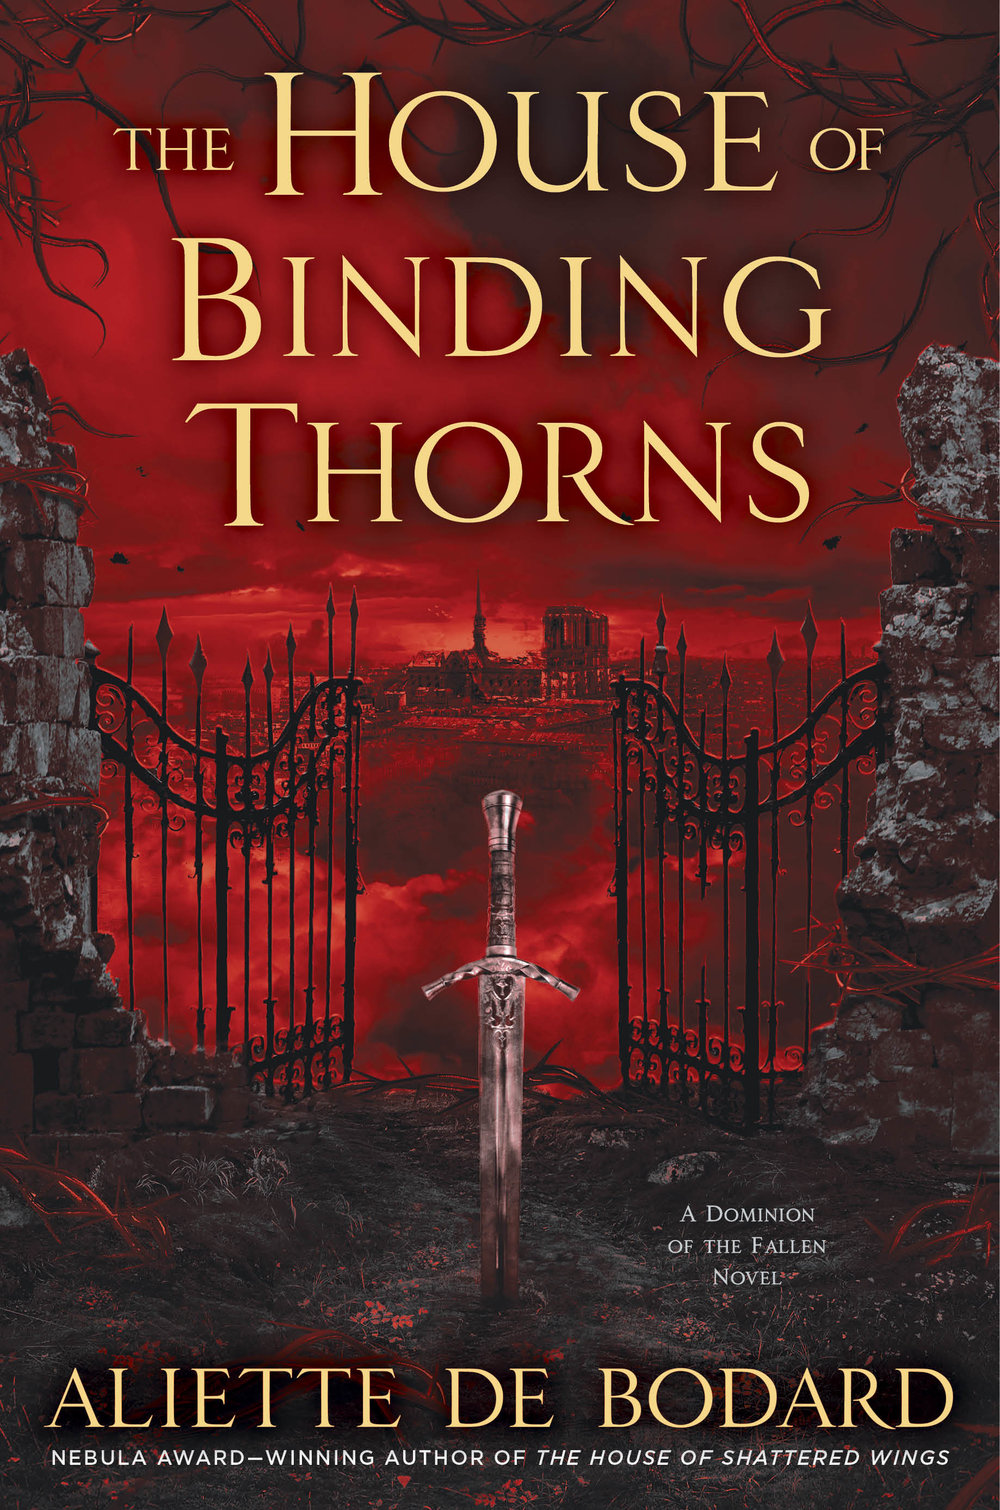 House-of-Binding-Thorns.jpg